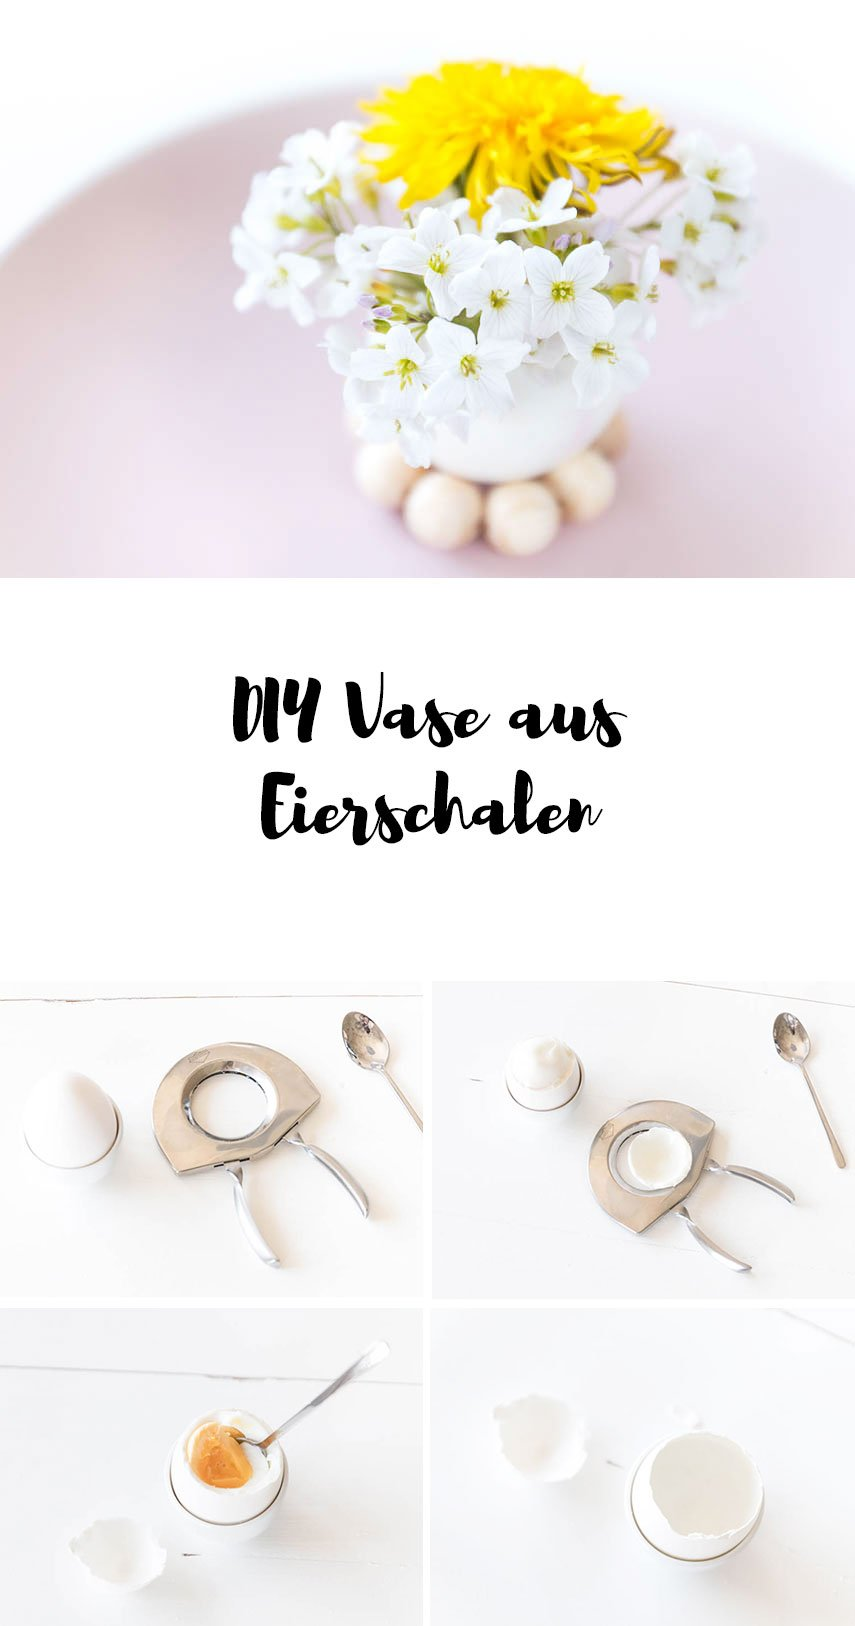 diy tischdeko zu ostern vasen aus eiern basteln ars textura diy blog. Black Bedroom Furniture Sets. Home Design Ideas